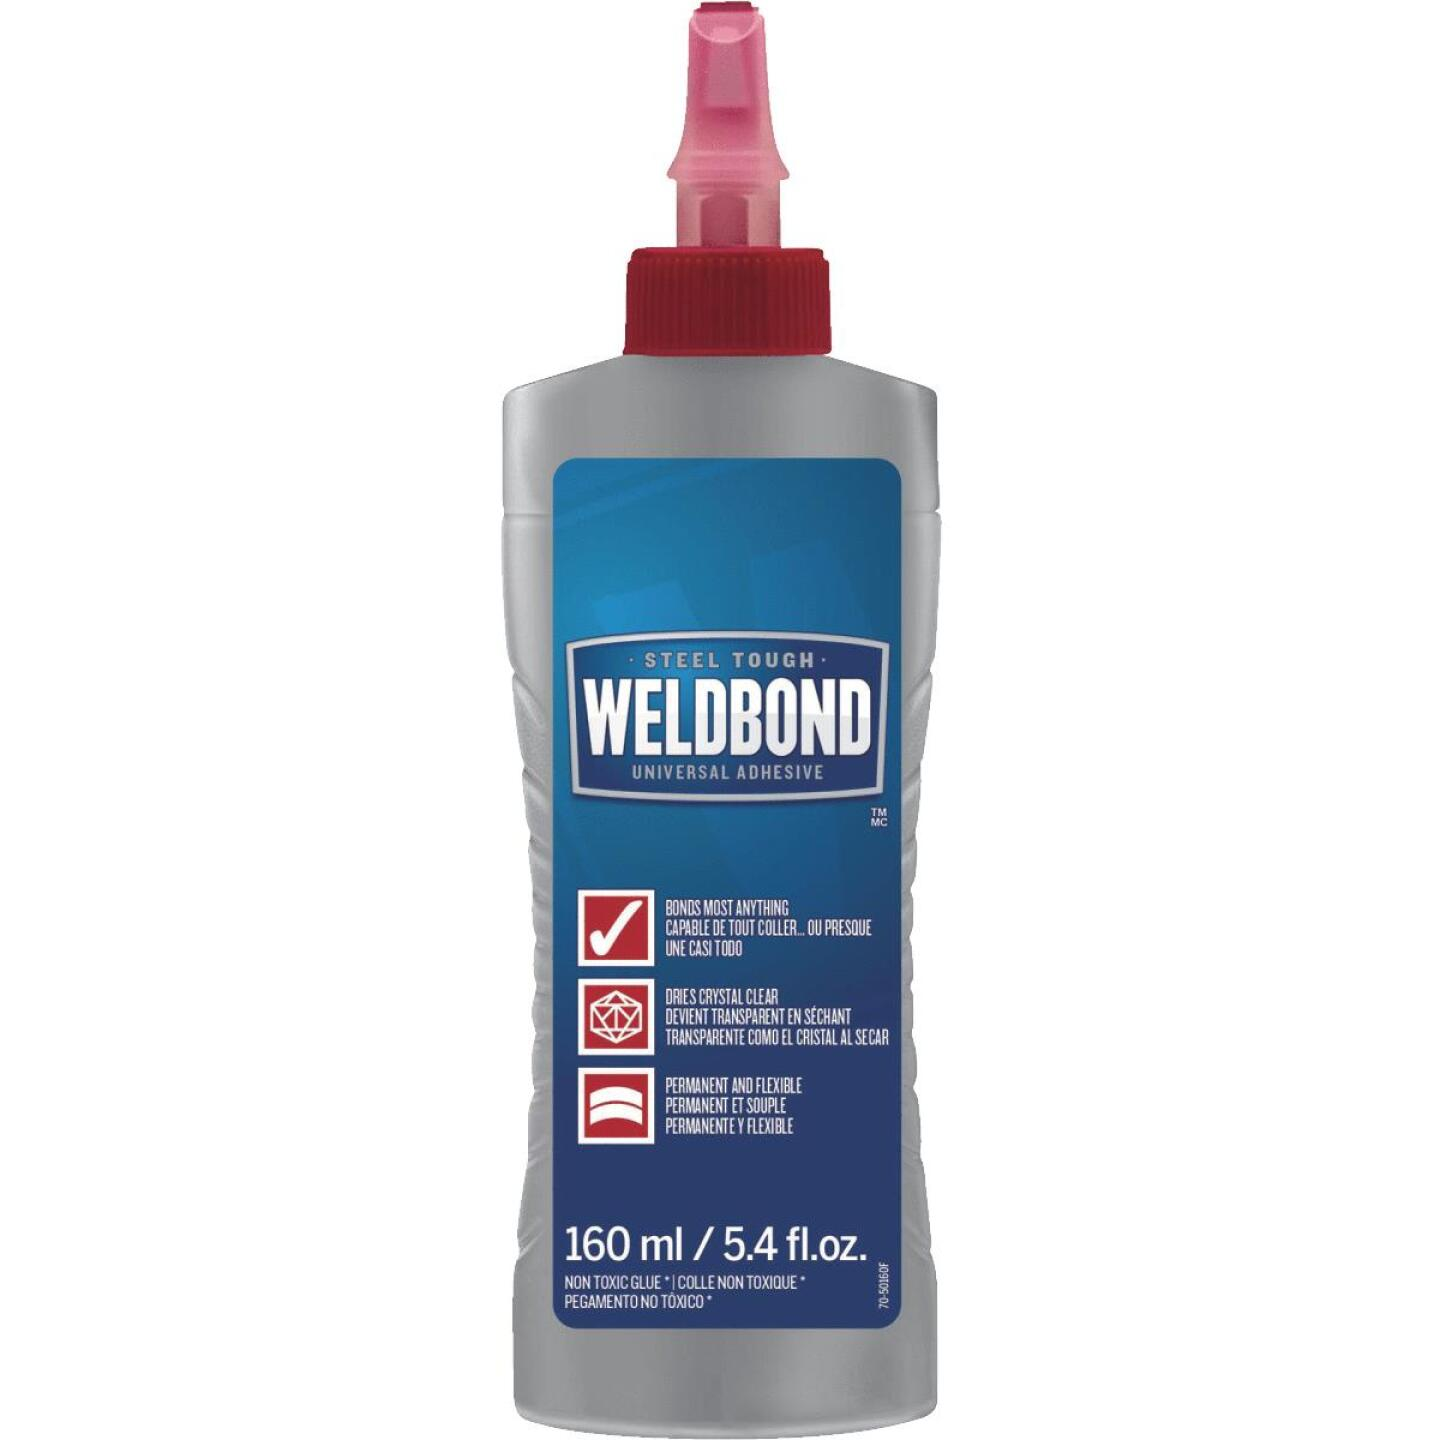 Weldbond 5.4 Oz. All-Purpose Glue Image 1